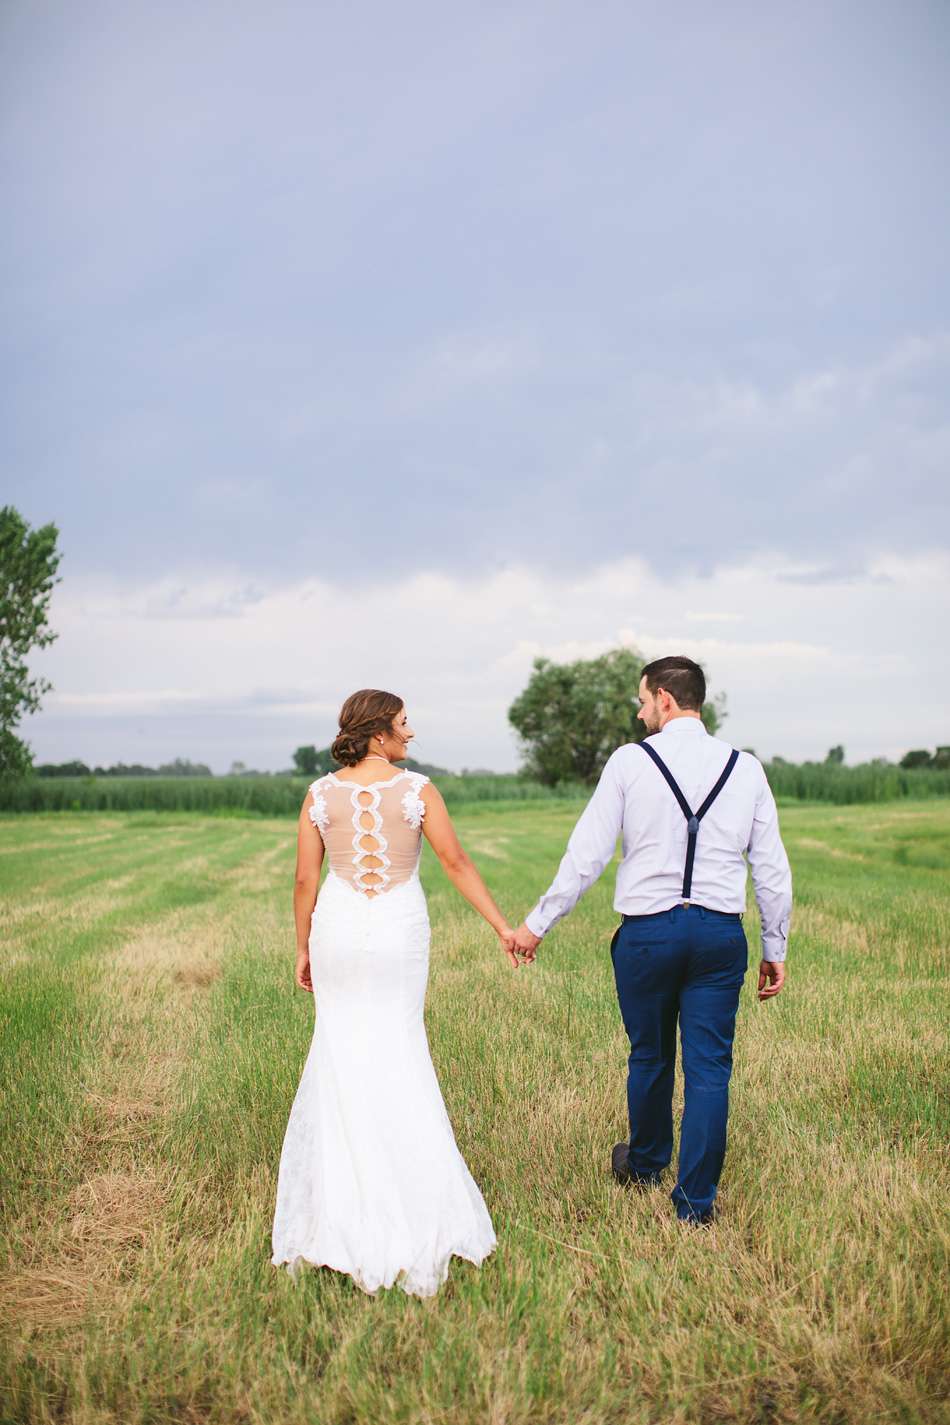 Walking in Field Wedding